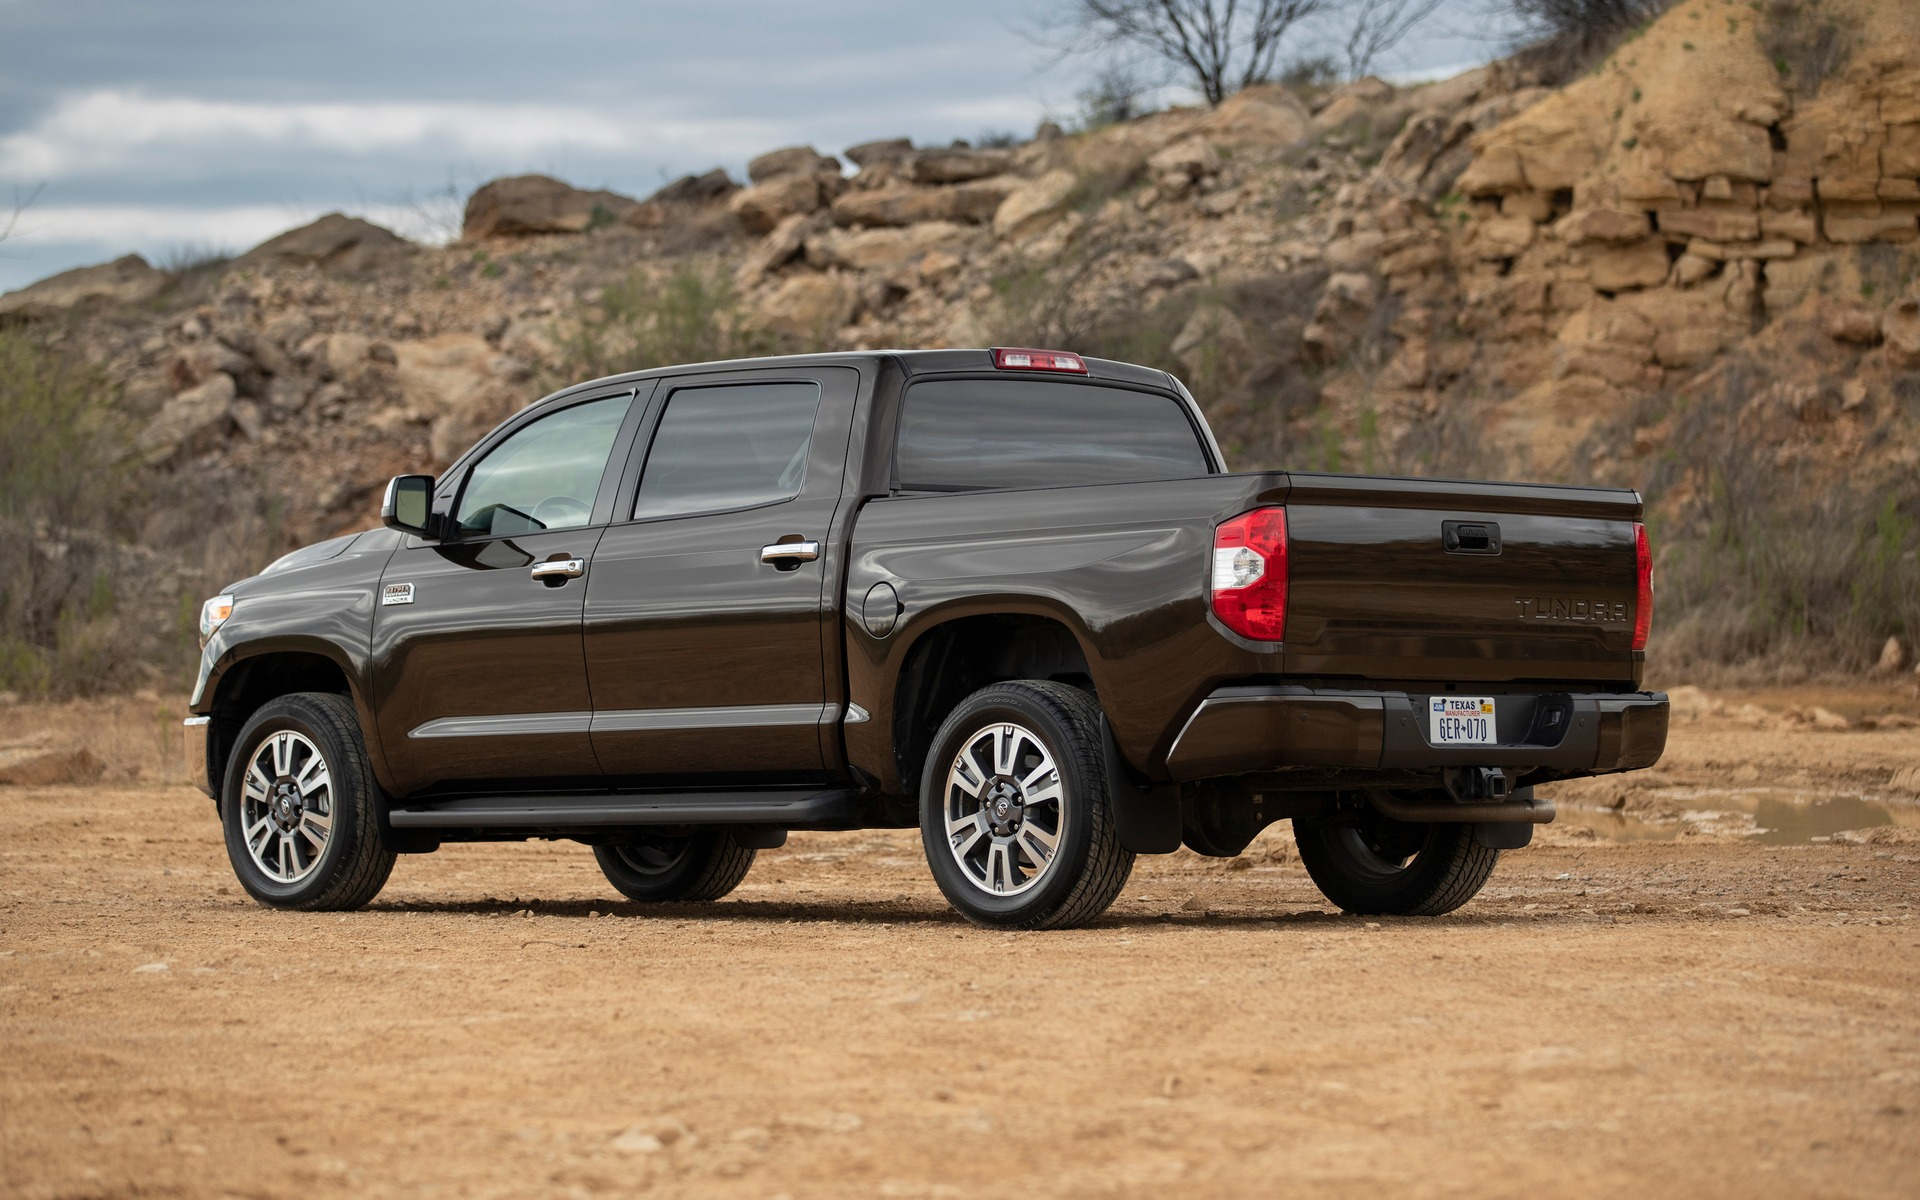 2020 Toyota Tundra Adds Two New Trim Levels The Car Guide